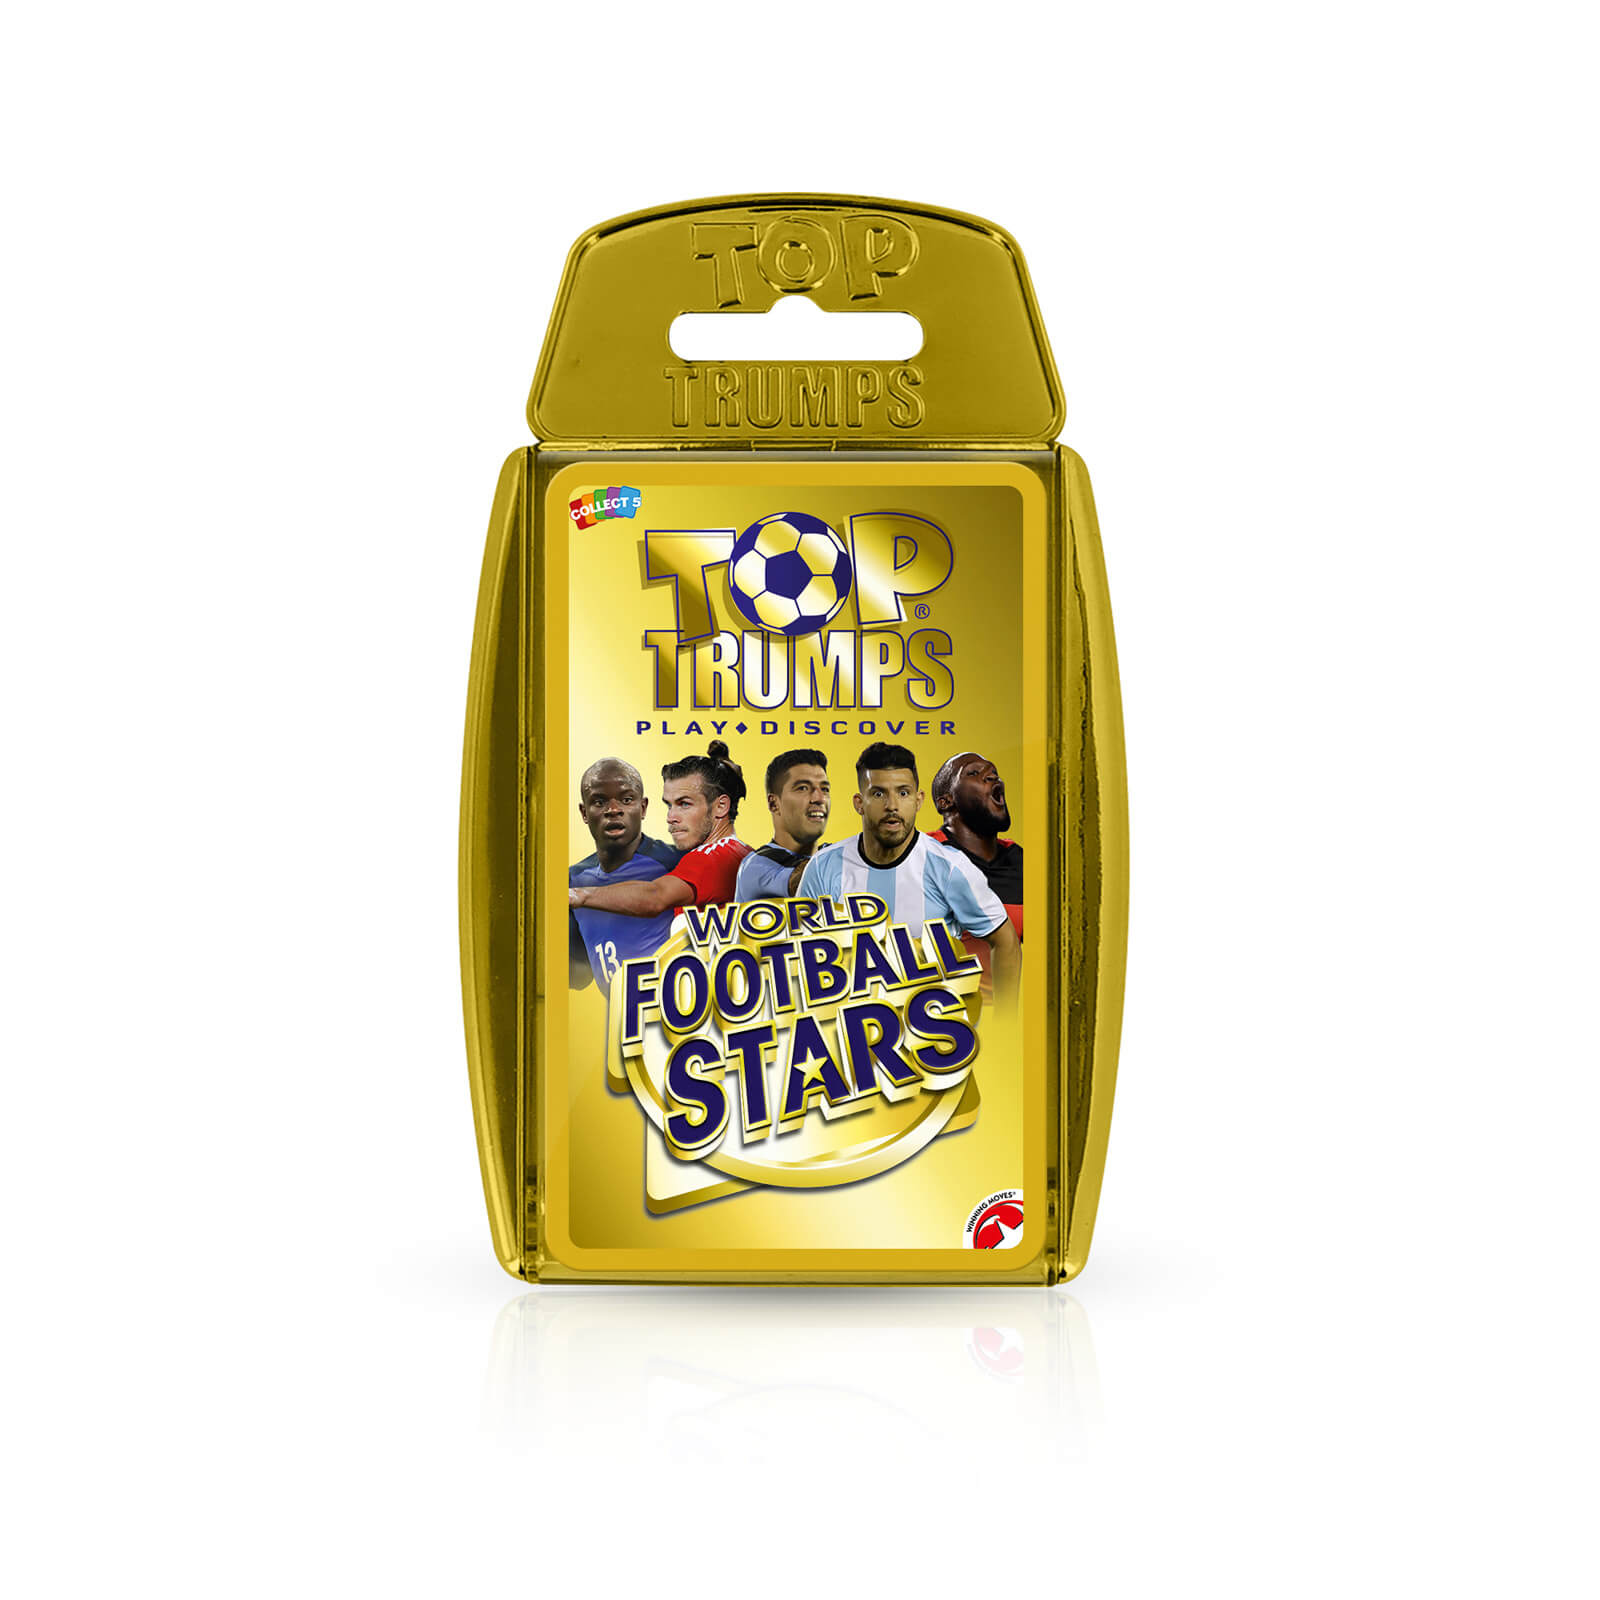 Top Trumps - Premium - World Football Stars in Gold Case